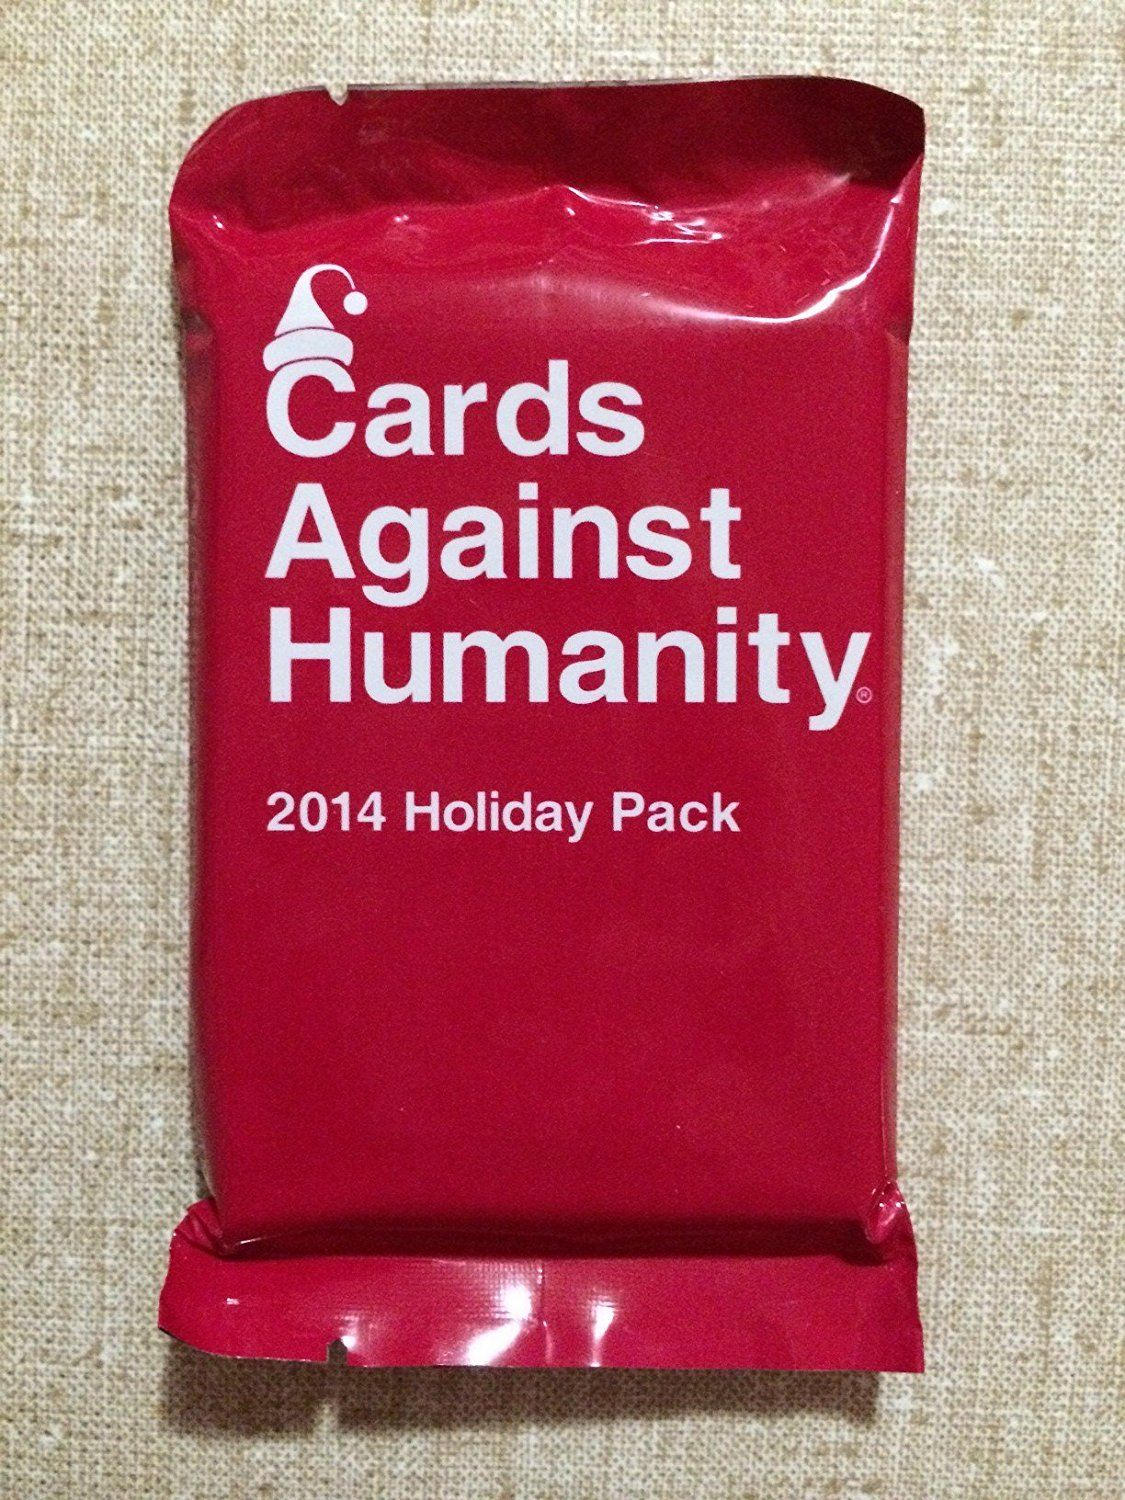 Cards against humanity 2014 holiday pack amazonca toys